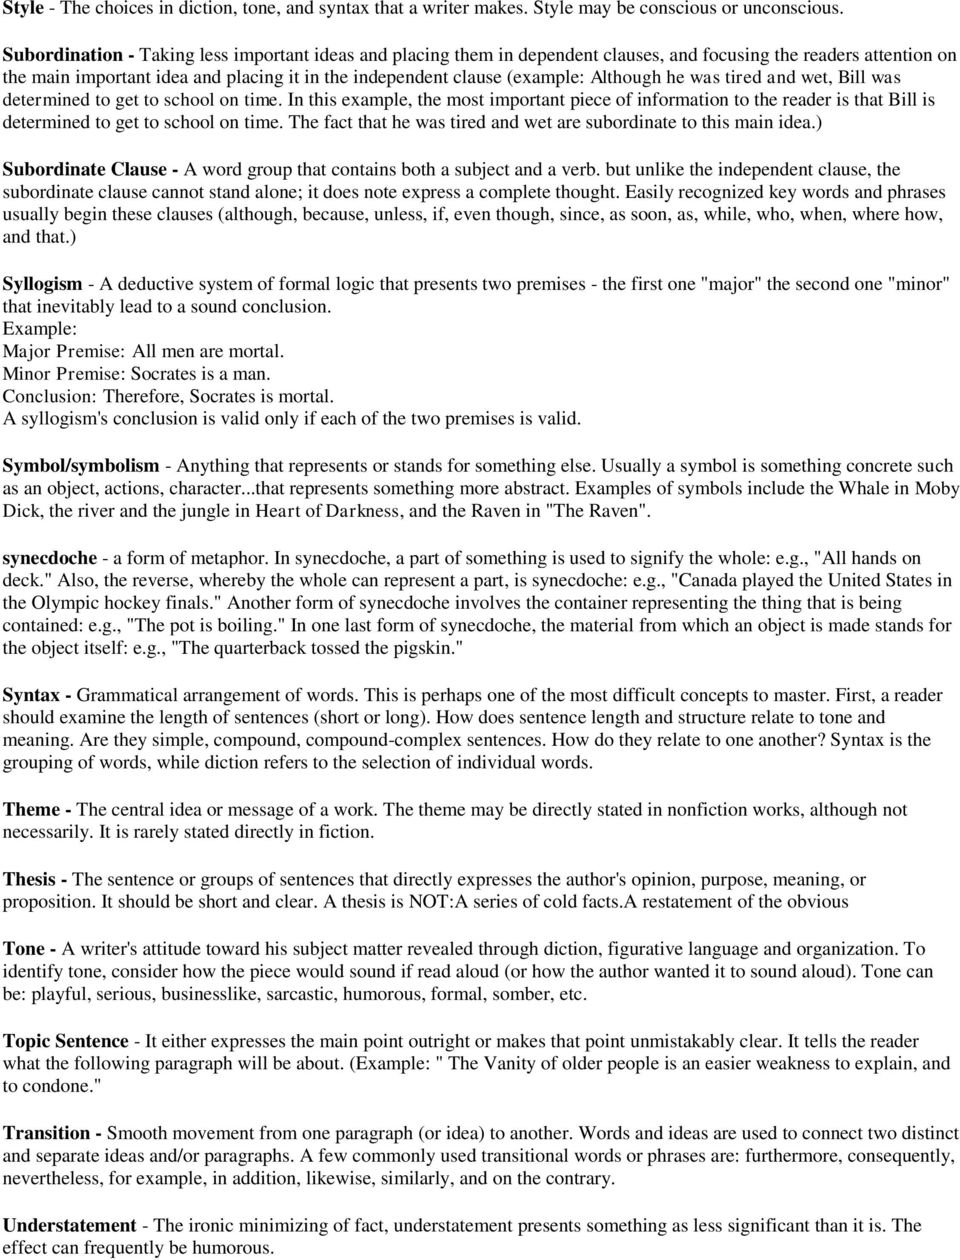 Glossary of Literary and Rhetorical Terms AP Language and